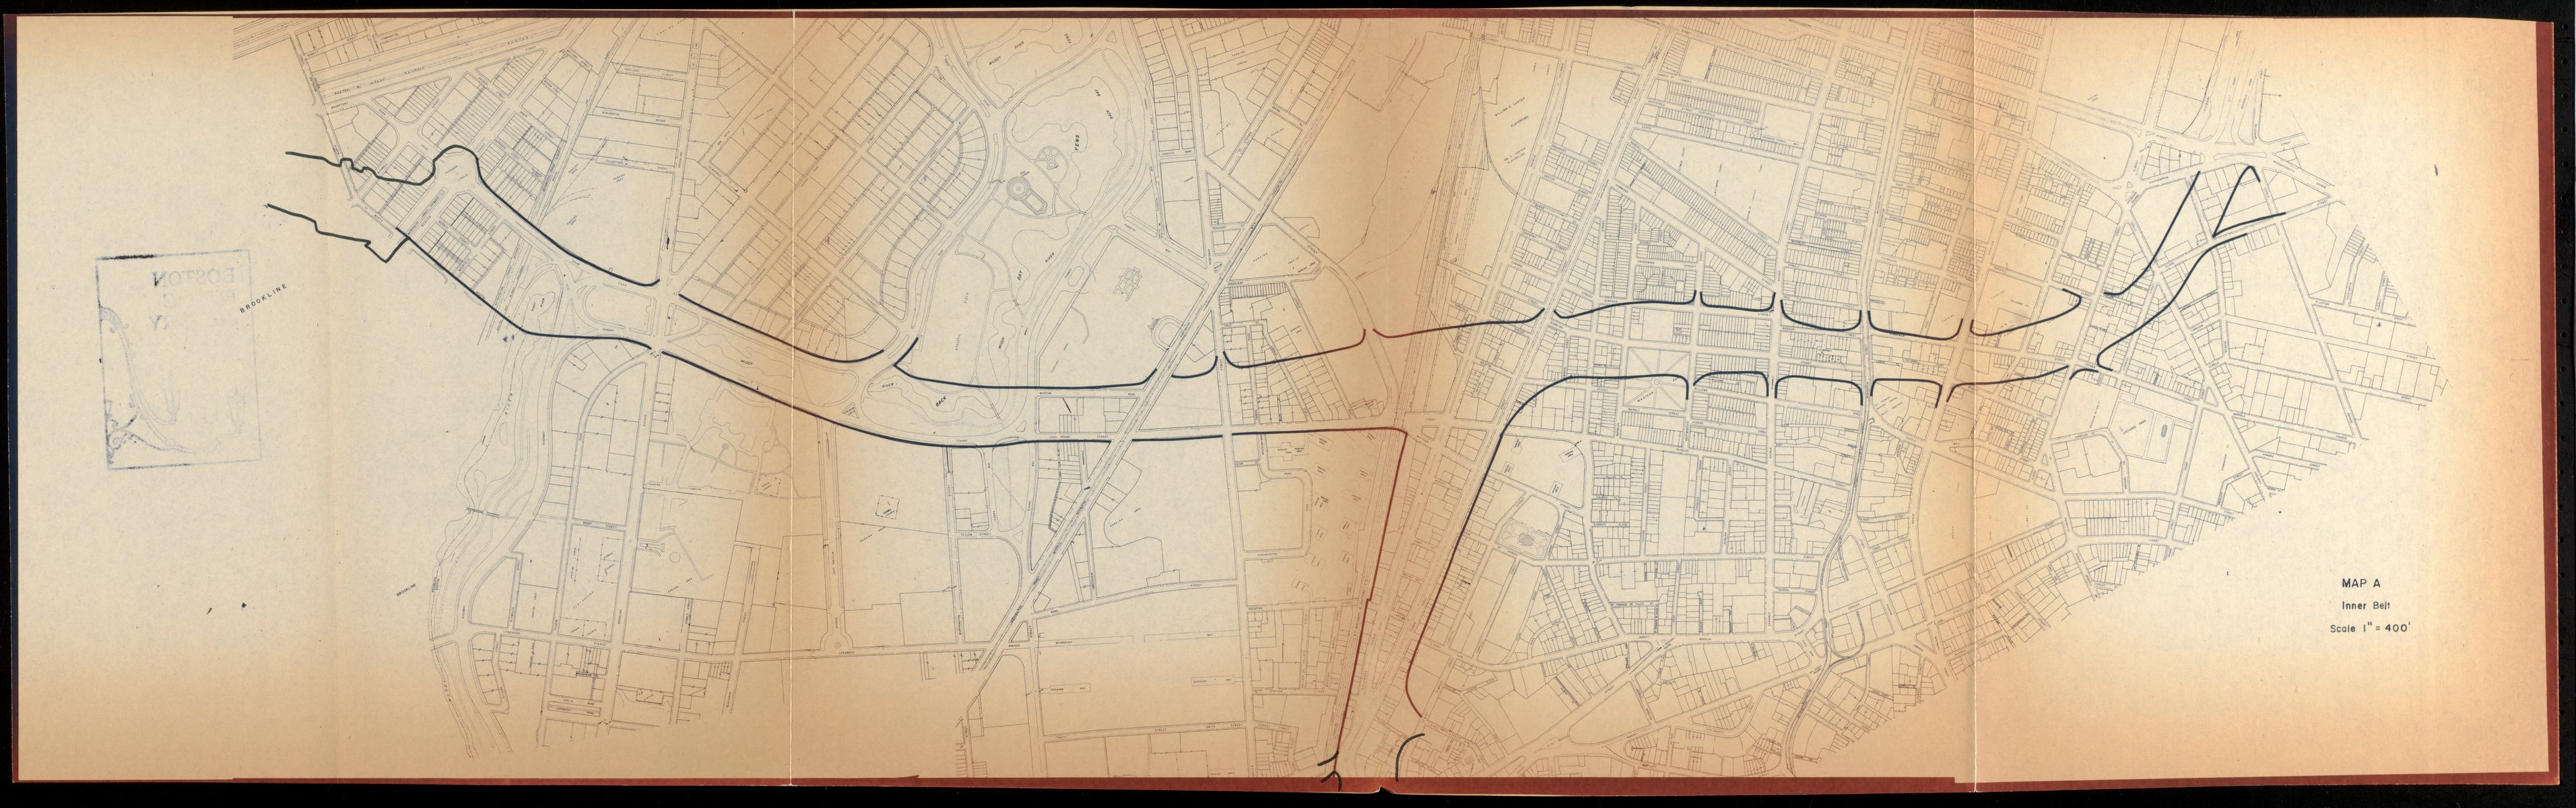 The proposed Southwest Expressway became one of the BRA's most controversial plans; this 1967 study examines the amount of displacement and property clearance that the proposed highway would have required